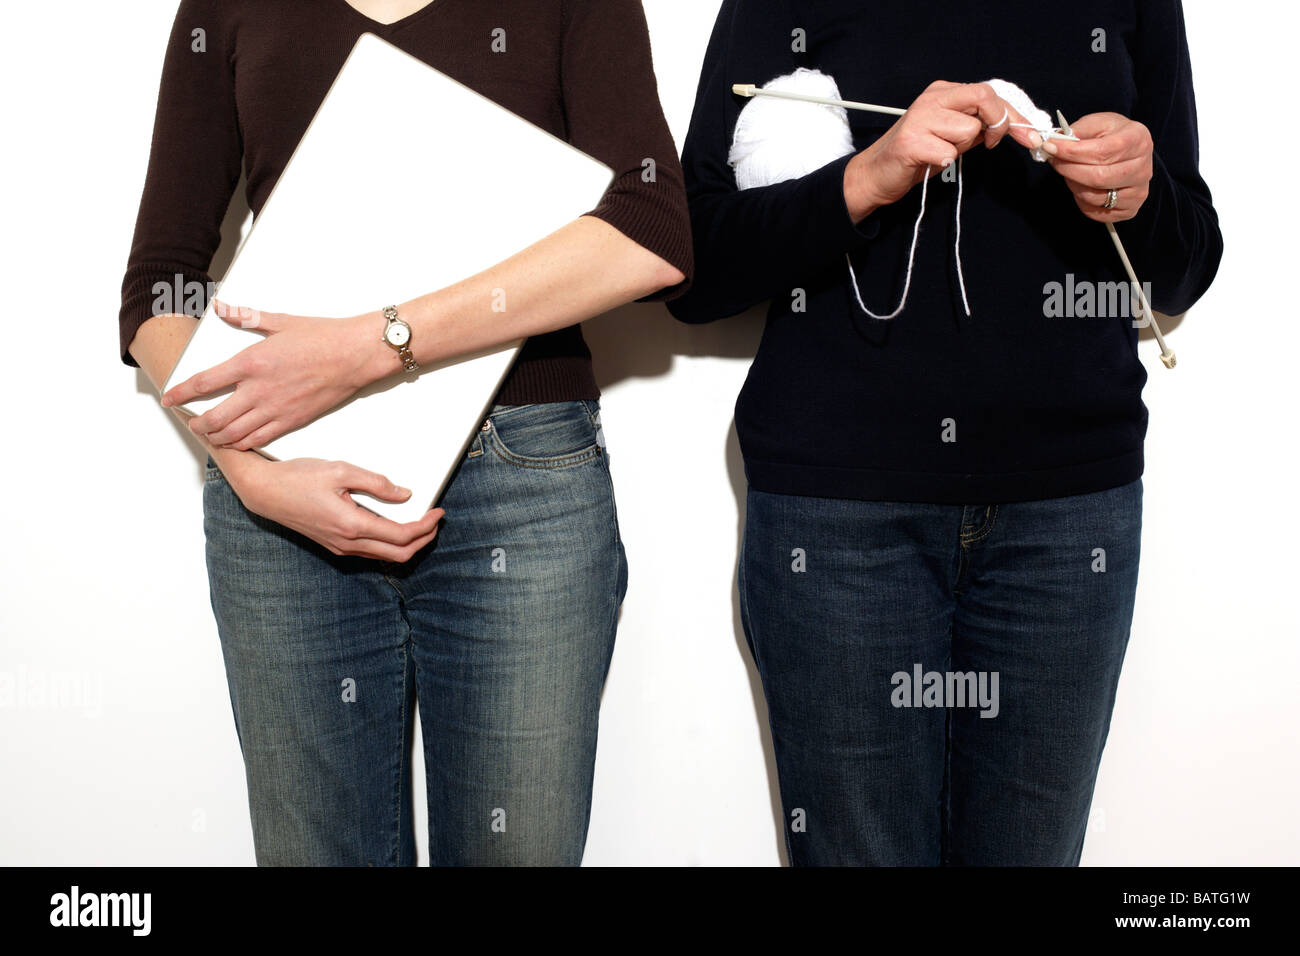 Leisure activities. The woman on the right is knitting and the woman on the left is carrying a laptop. - Stock Image